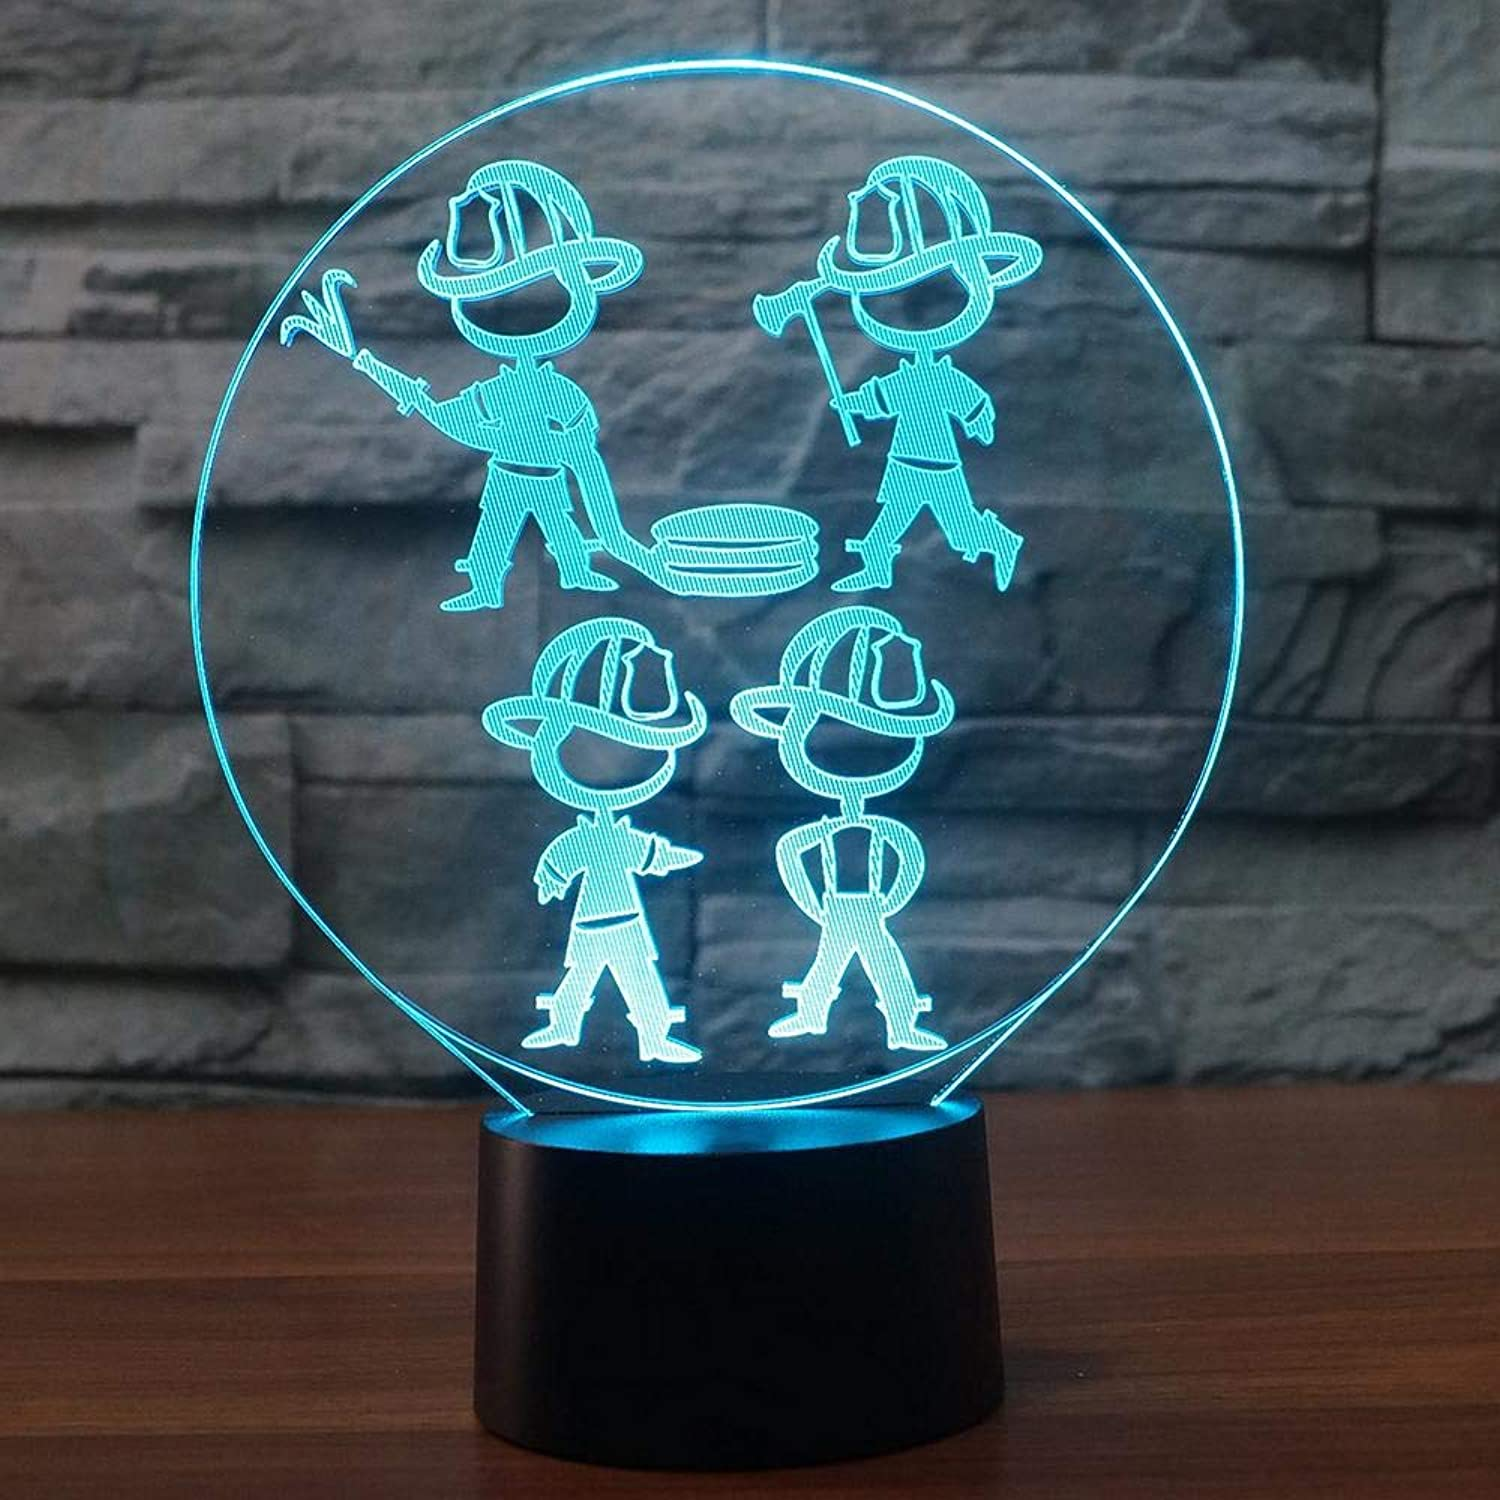 Fsewfs 7 colors Change 3D Led Firemen Modelling Night Lights USB Kids Touch Button Desk Table Lamp for Living Room Home Decor